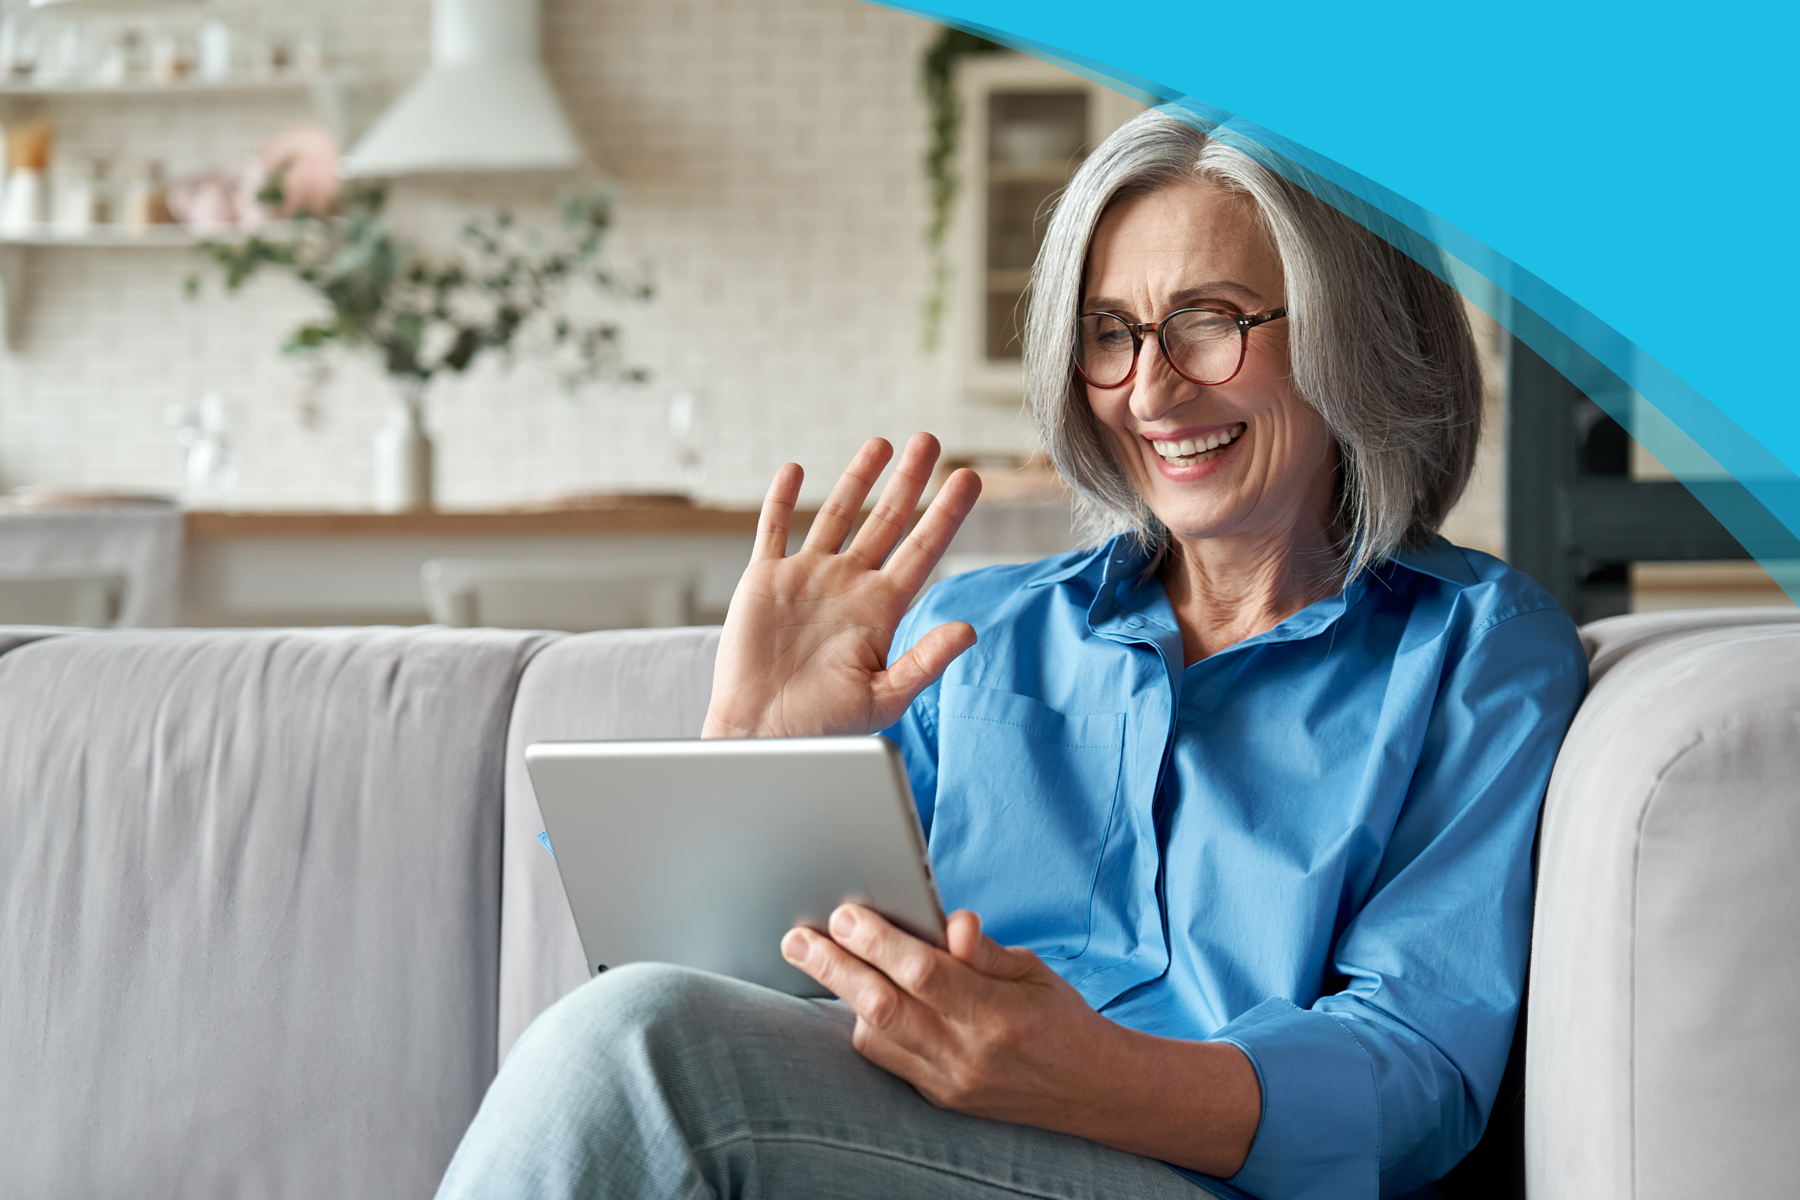 Mentor Program | Canadian Hard of Hearing Association - Older Woman using a tablet and laughing on a Couch